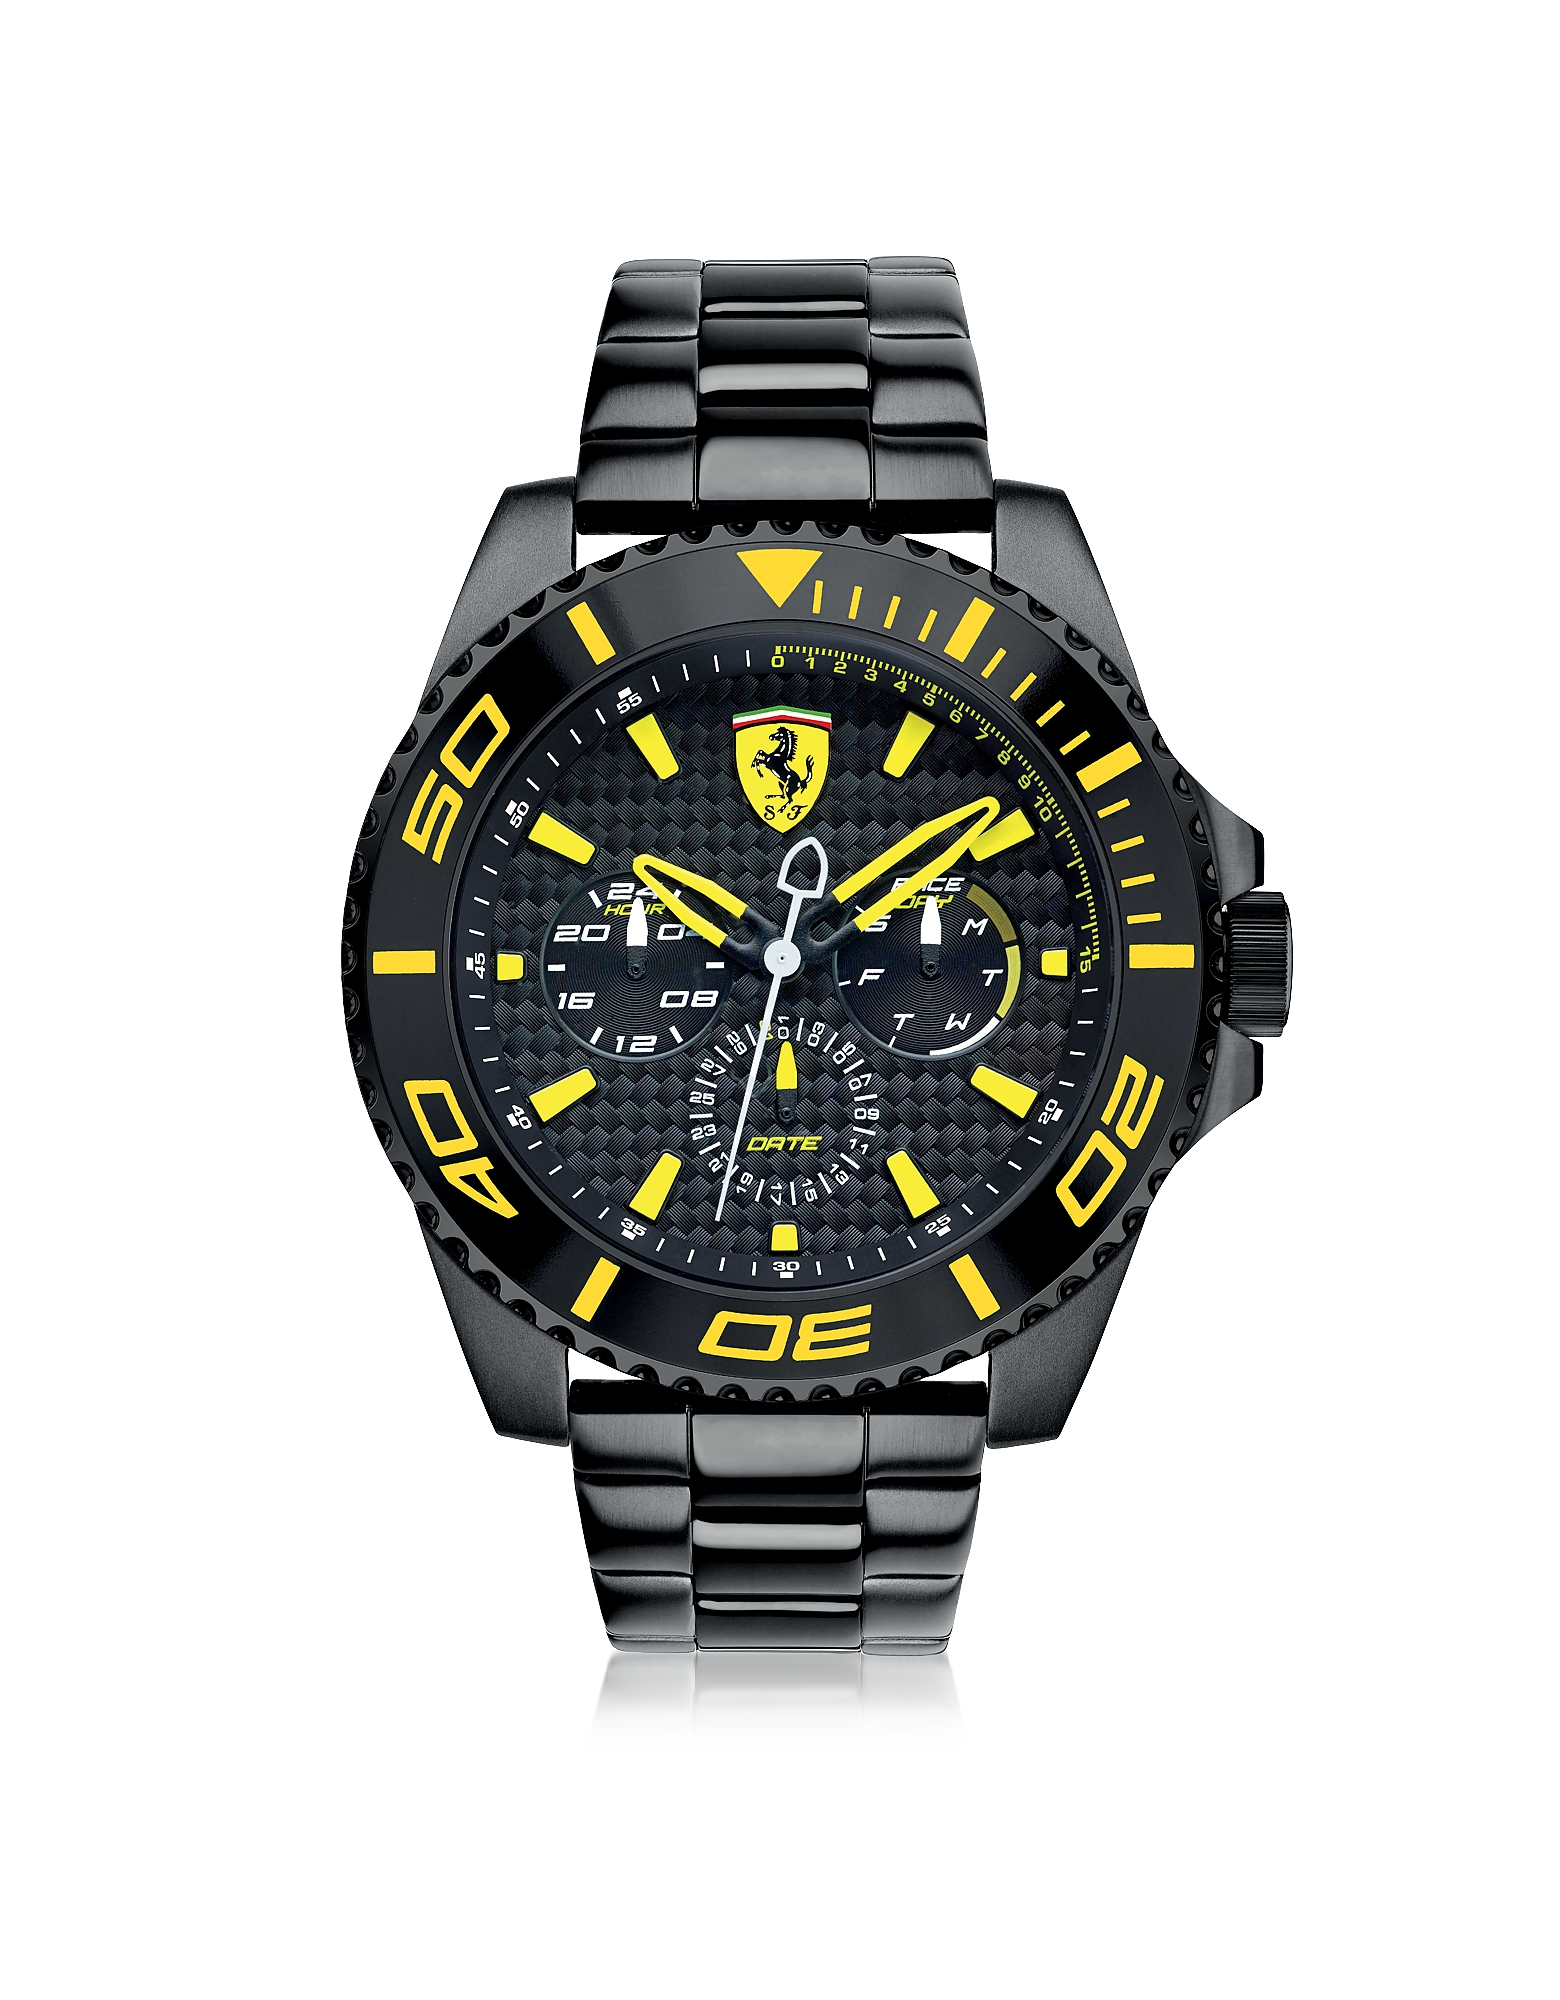 Ferrari Men's Watches, XX Kers Black and Yellow Stainless Steel Men's Watch